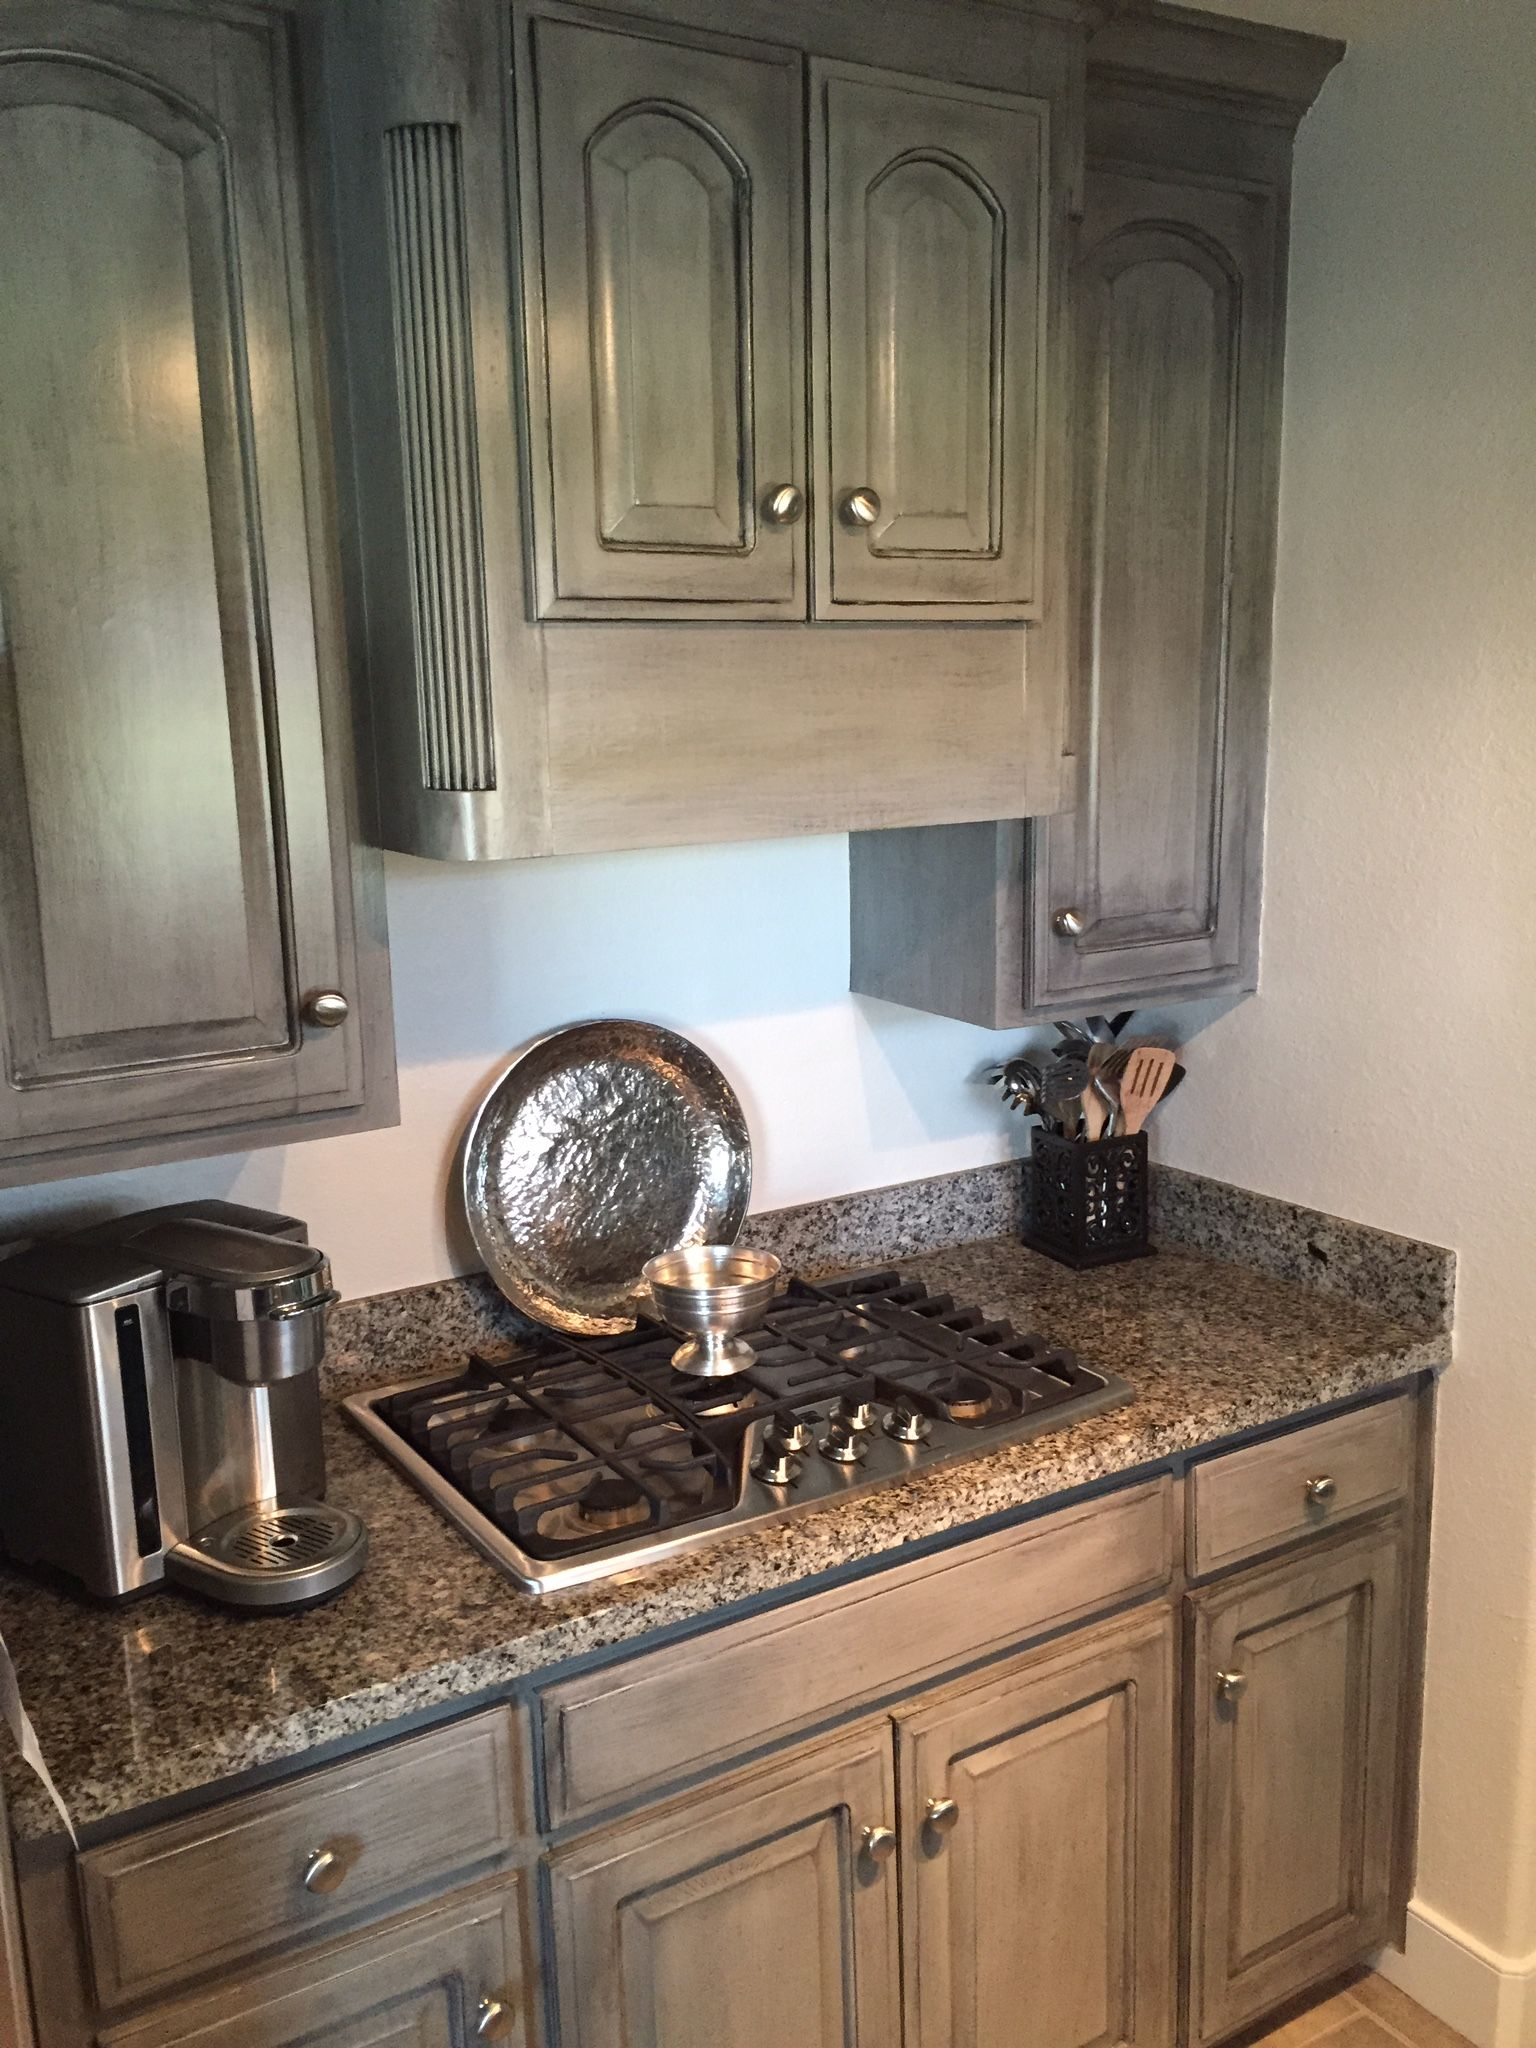 Pewter Cast Sherwin Williams With Black Glaze Stained Kitchen Cabinets Glazed Kitchen Cabinets Kitchen Cabinets Upgrade